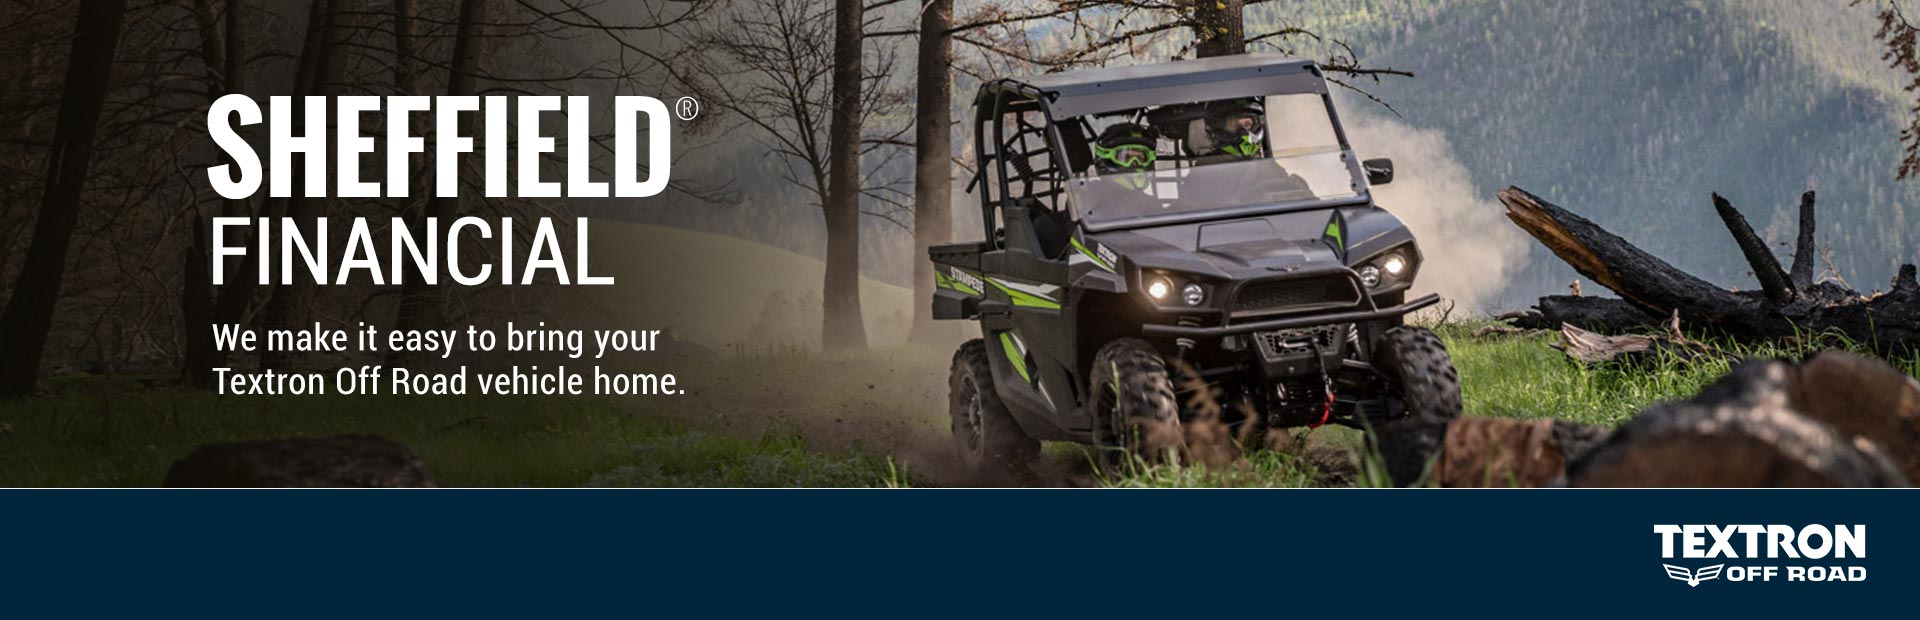 Textron Off Road: Sheffield® Financial